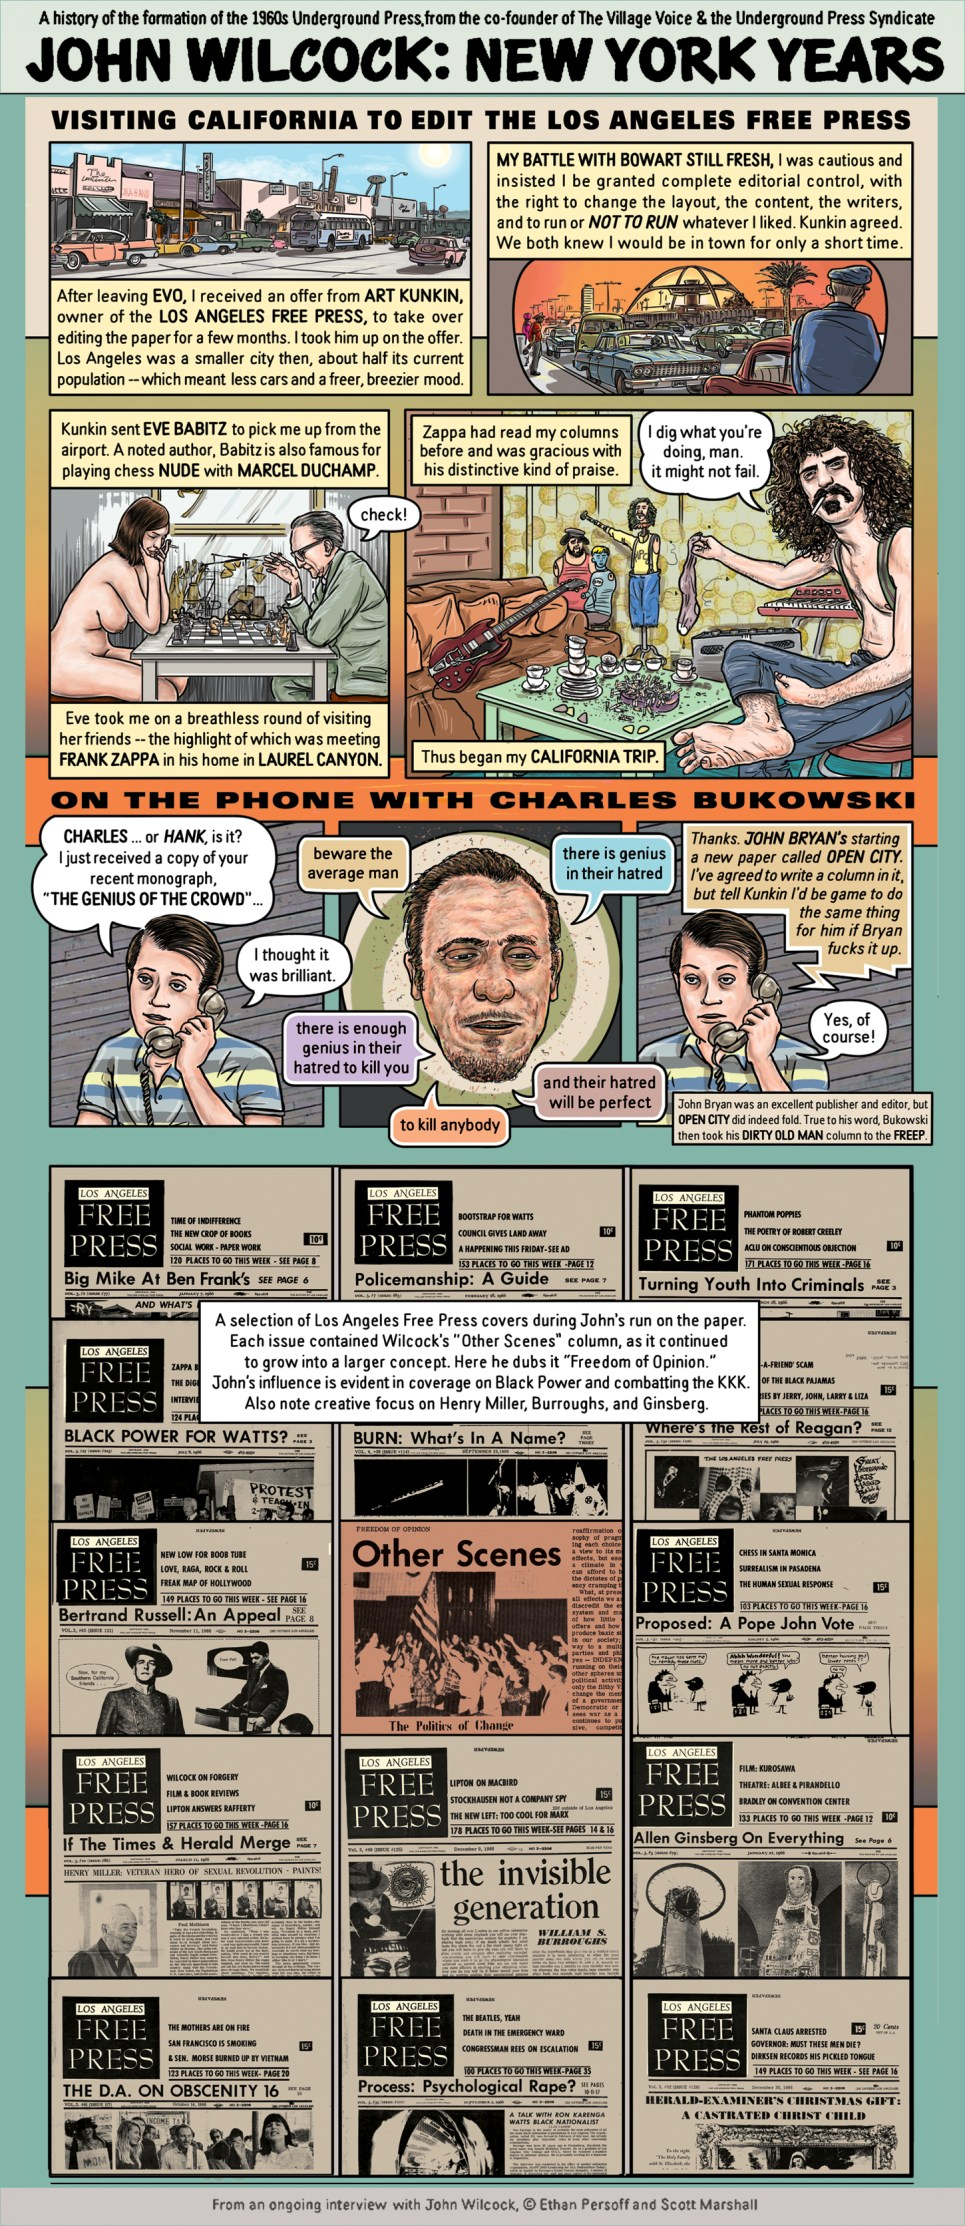 John Wilcock and the Los Angeles Free Press - art by Ethan Persoff and Scott Marshall